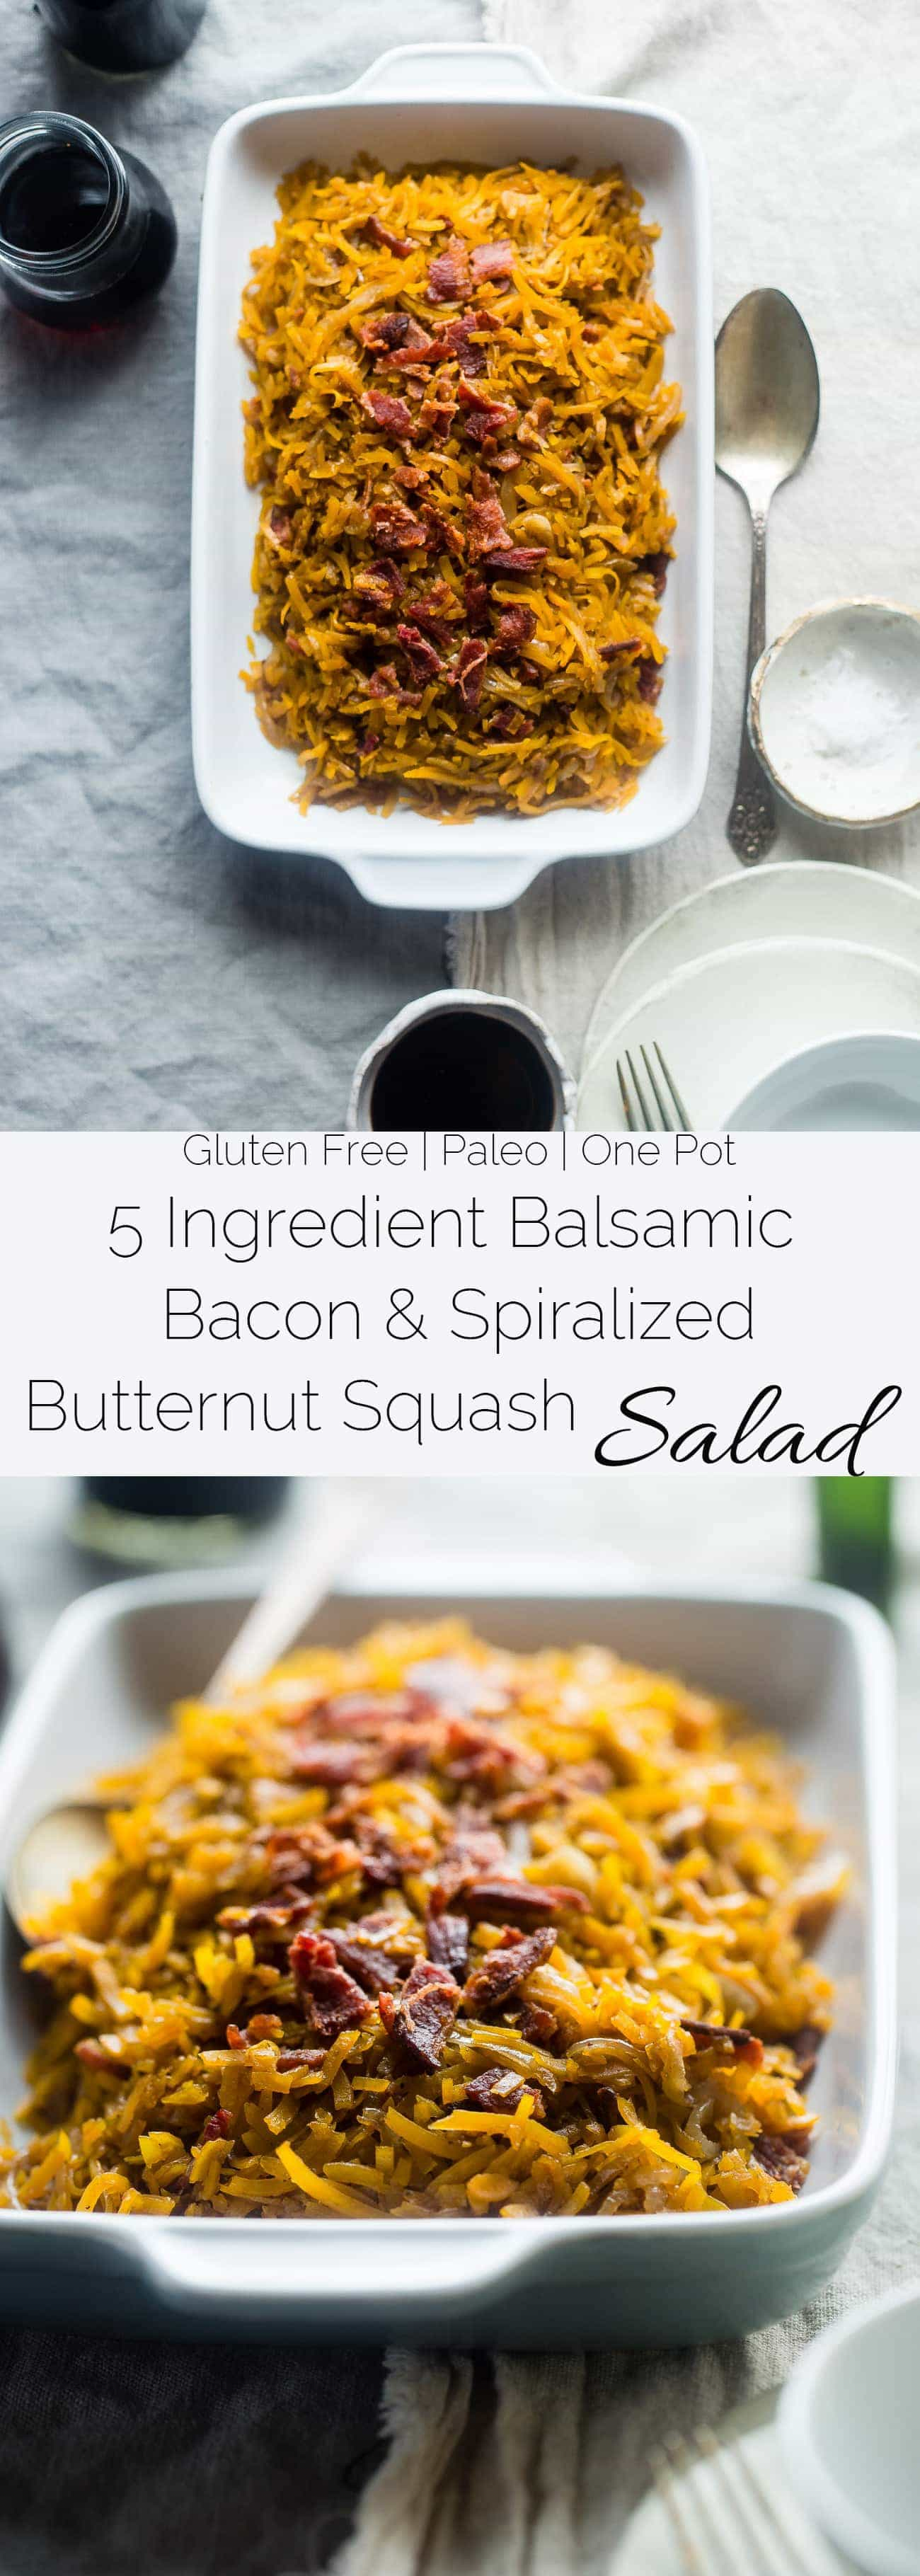 5 Ingredient Bacon Balsamic Butternut Squash Salad - This spiralized butternut squash salad features crispy bacon and a sweet and tangy maple glaze! It's a healthy, paleo friendly side dish with only 5 ingredients! | Foodfaithfitness.com | @FoodFaithFit